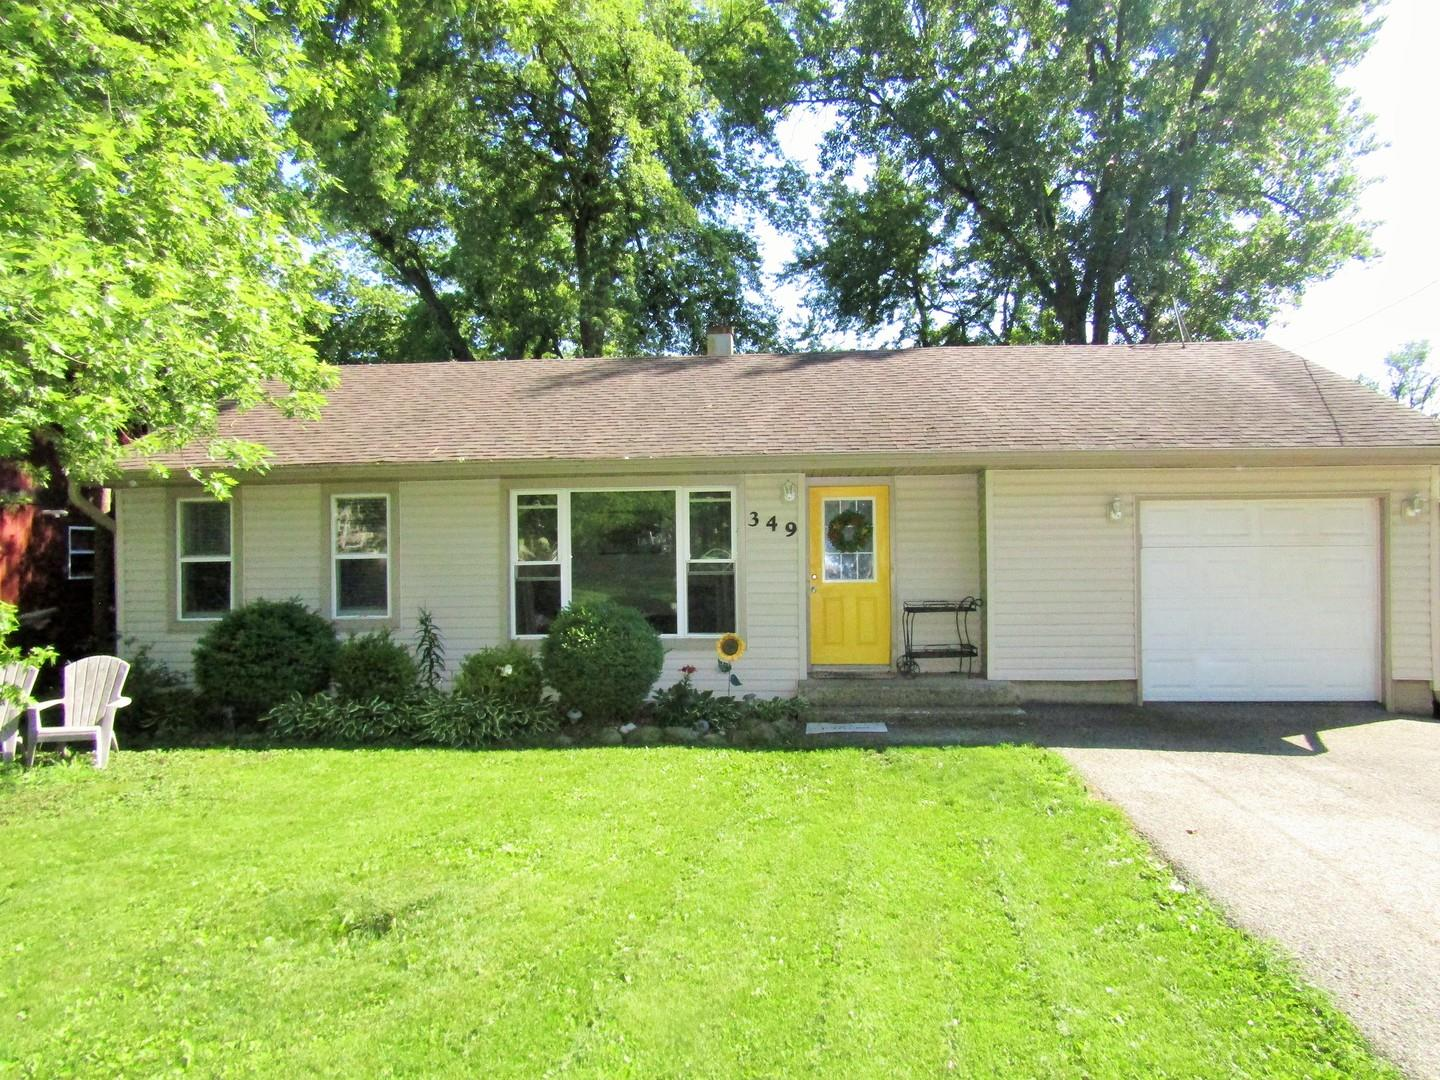 349 Council Trail, Lake in the Hills, IL 60156 - #: 11144447